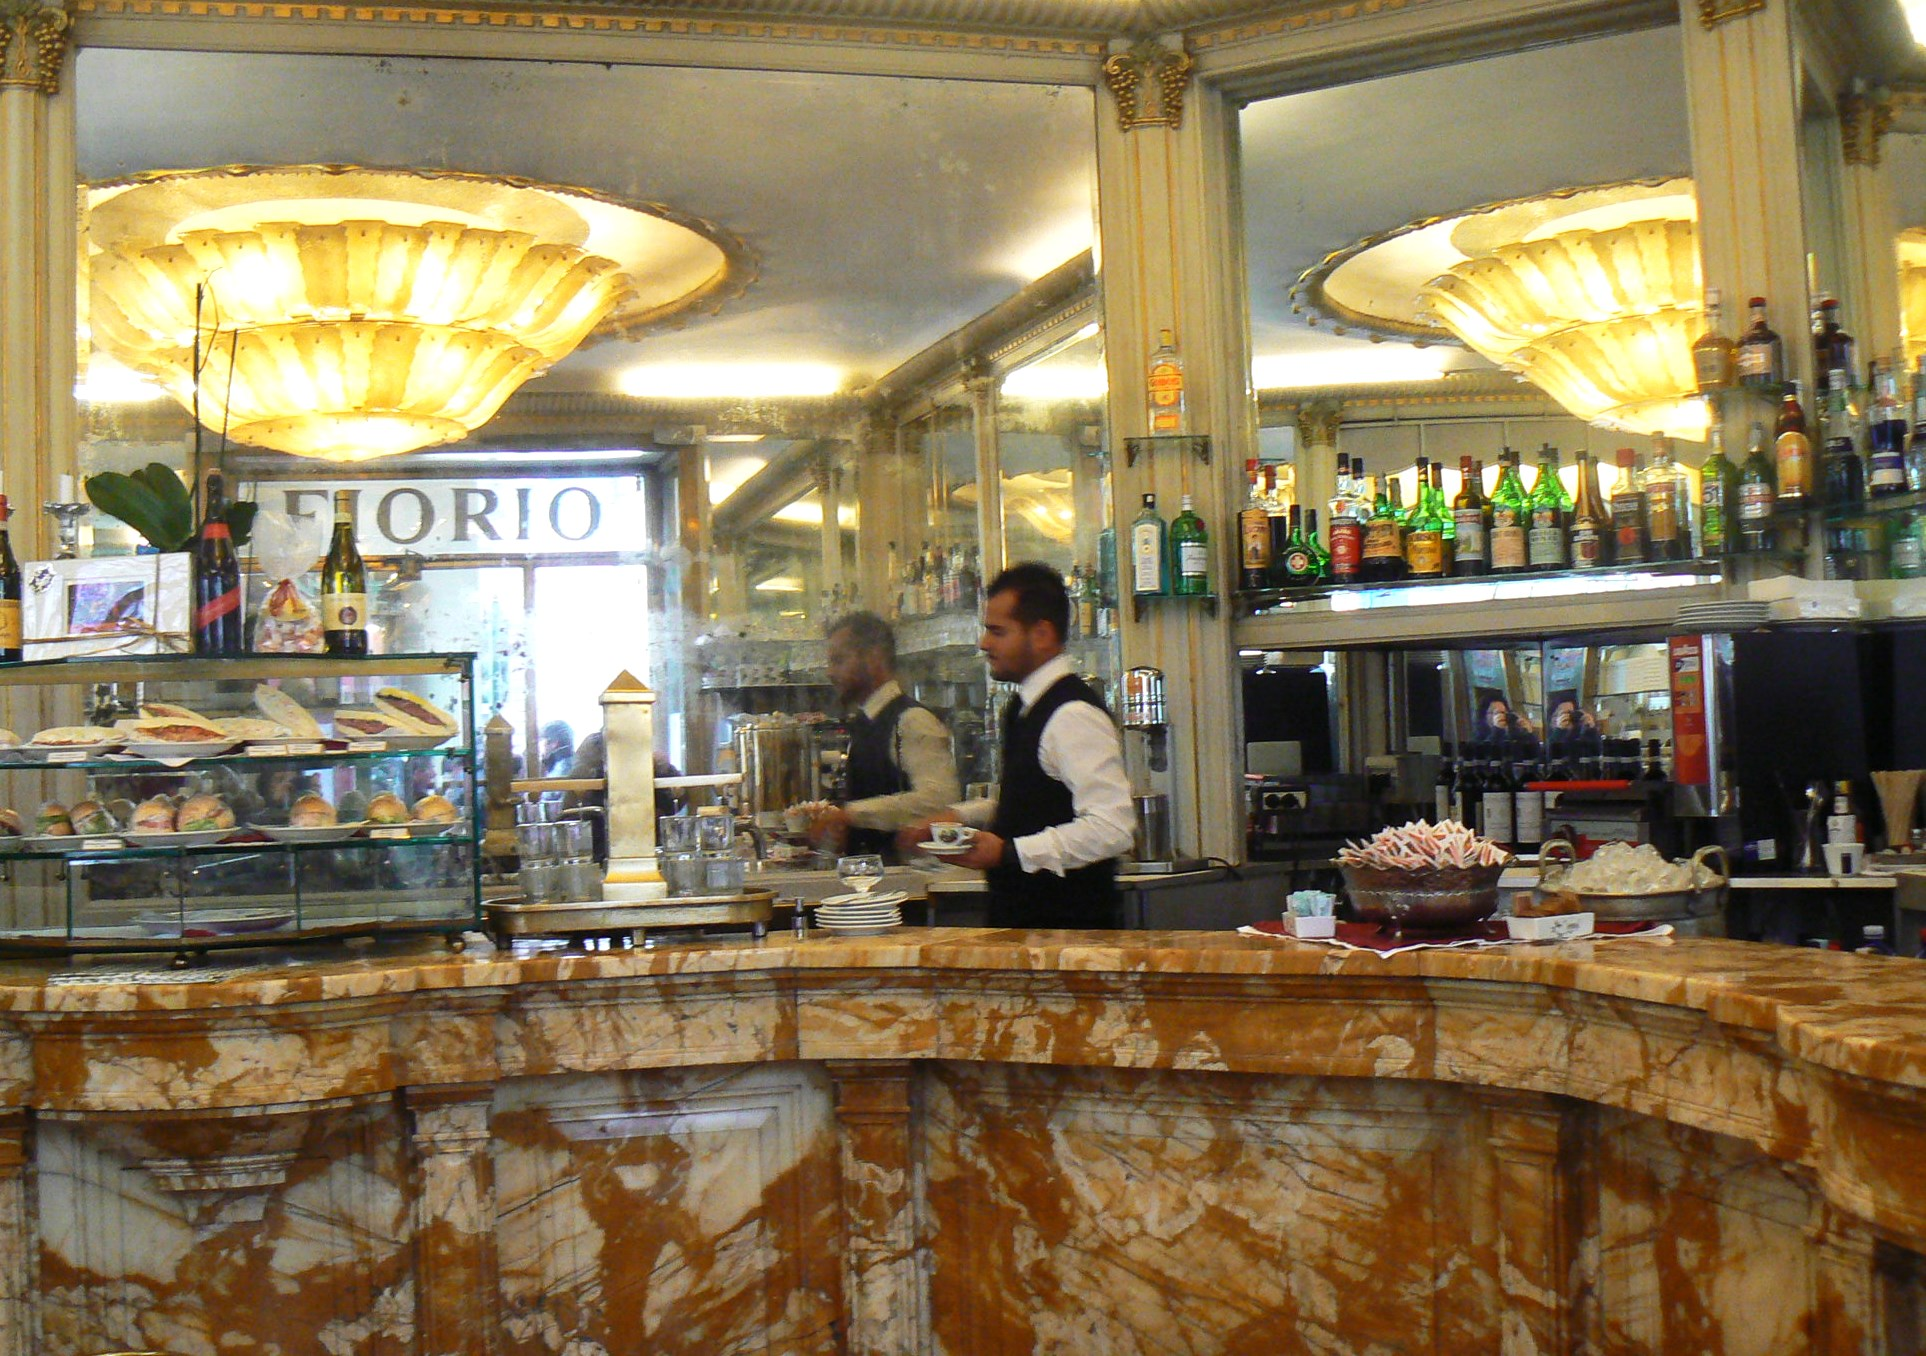 Top 10 Cafes & Bars in Turin - Where to Eat and Drink in Turin